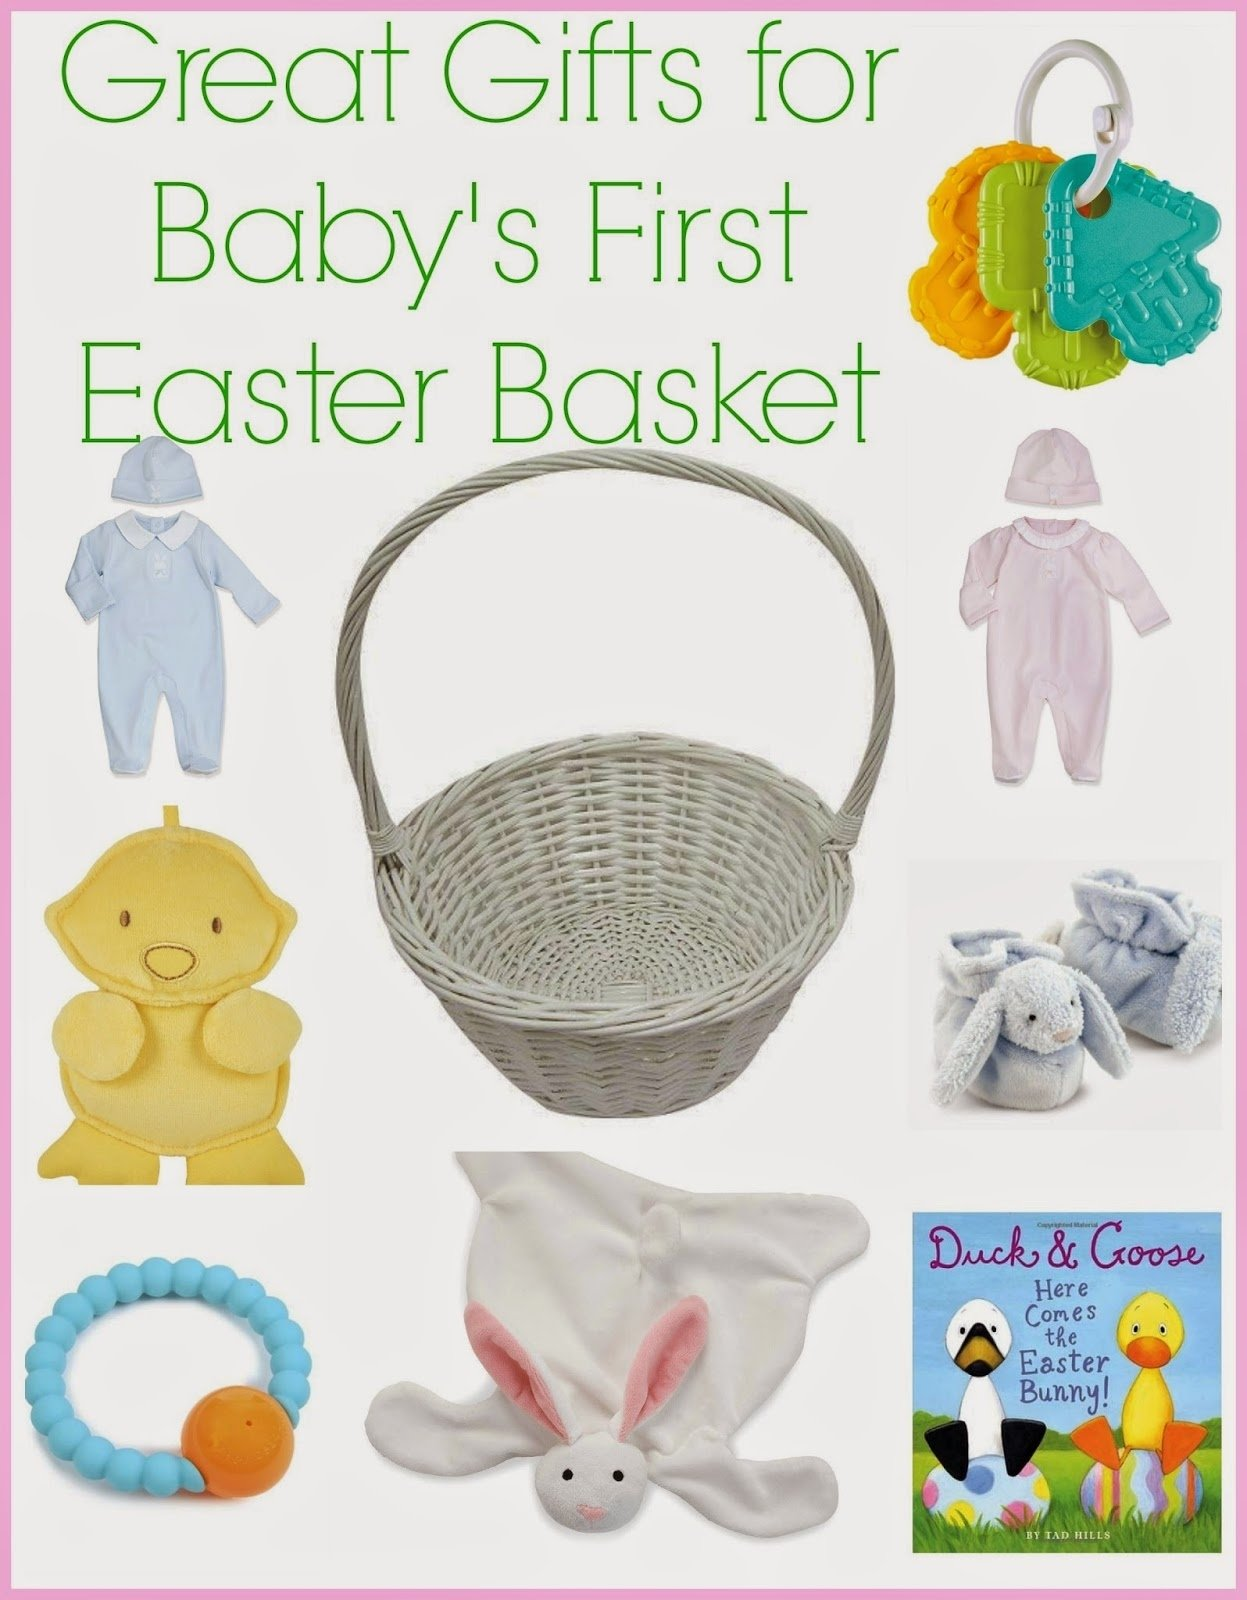 10 Stylish Baby First Easter Basket Ideas great gifts for babys first easter the chirping moms